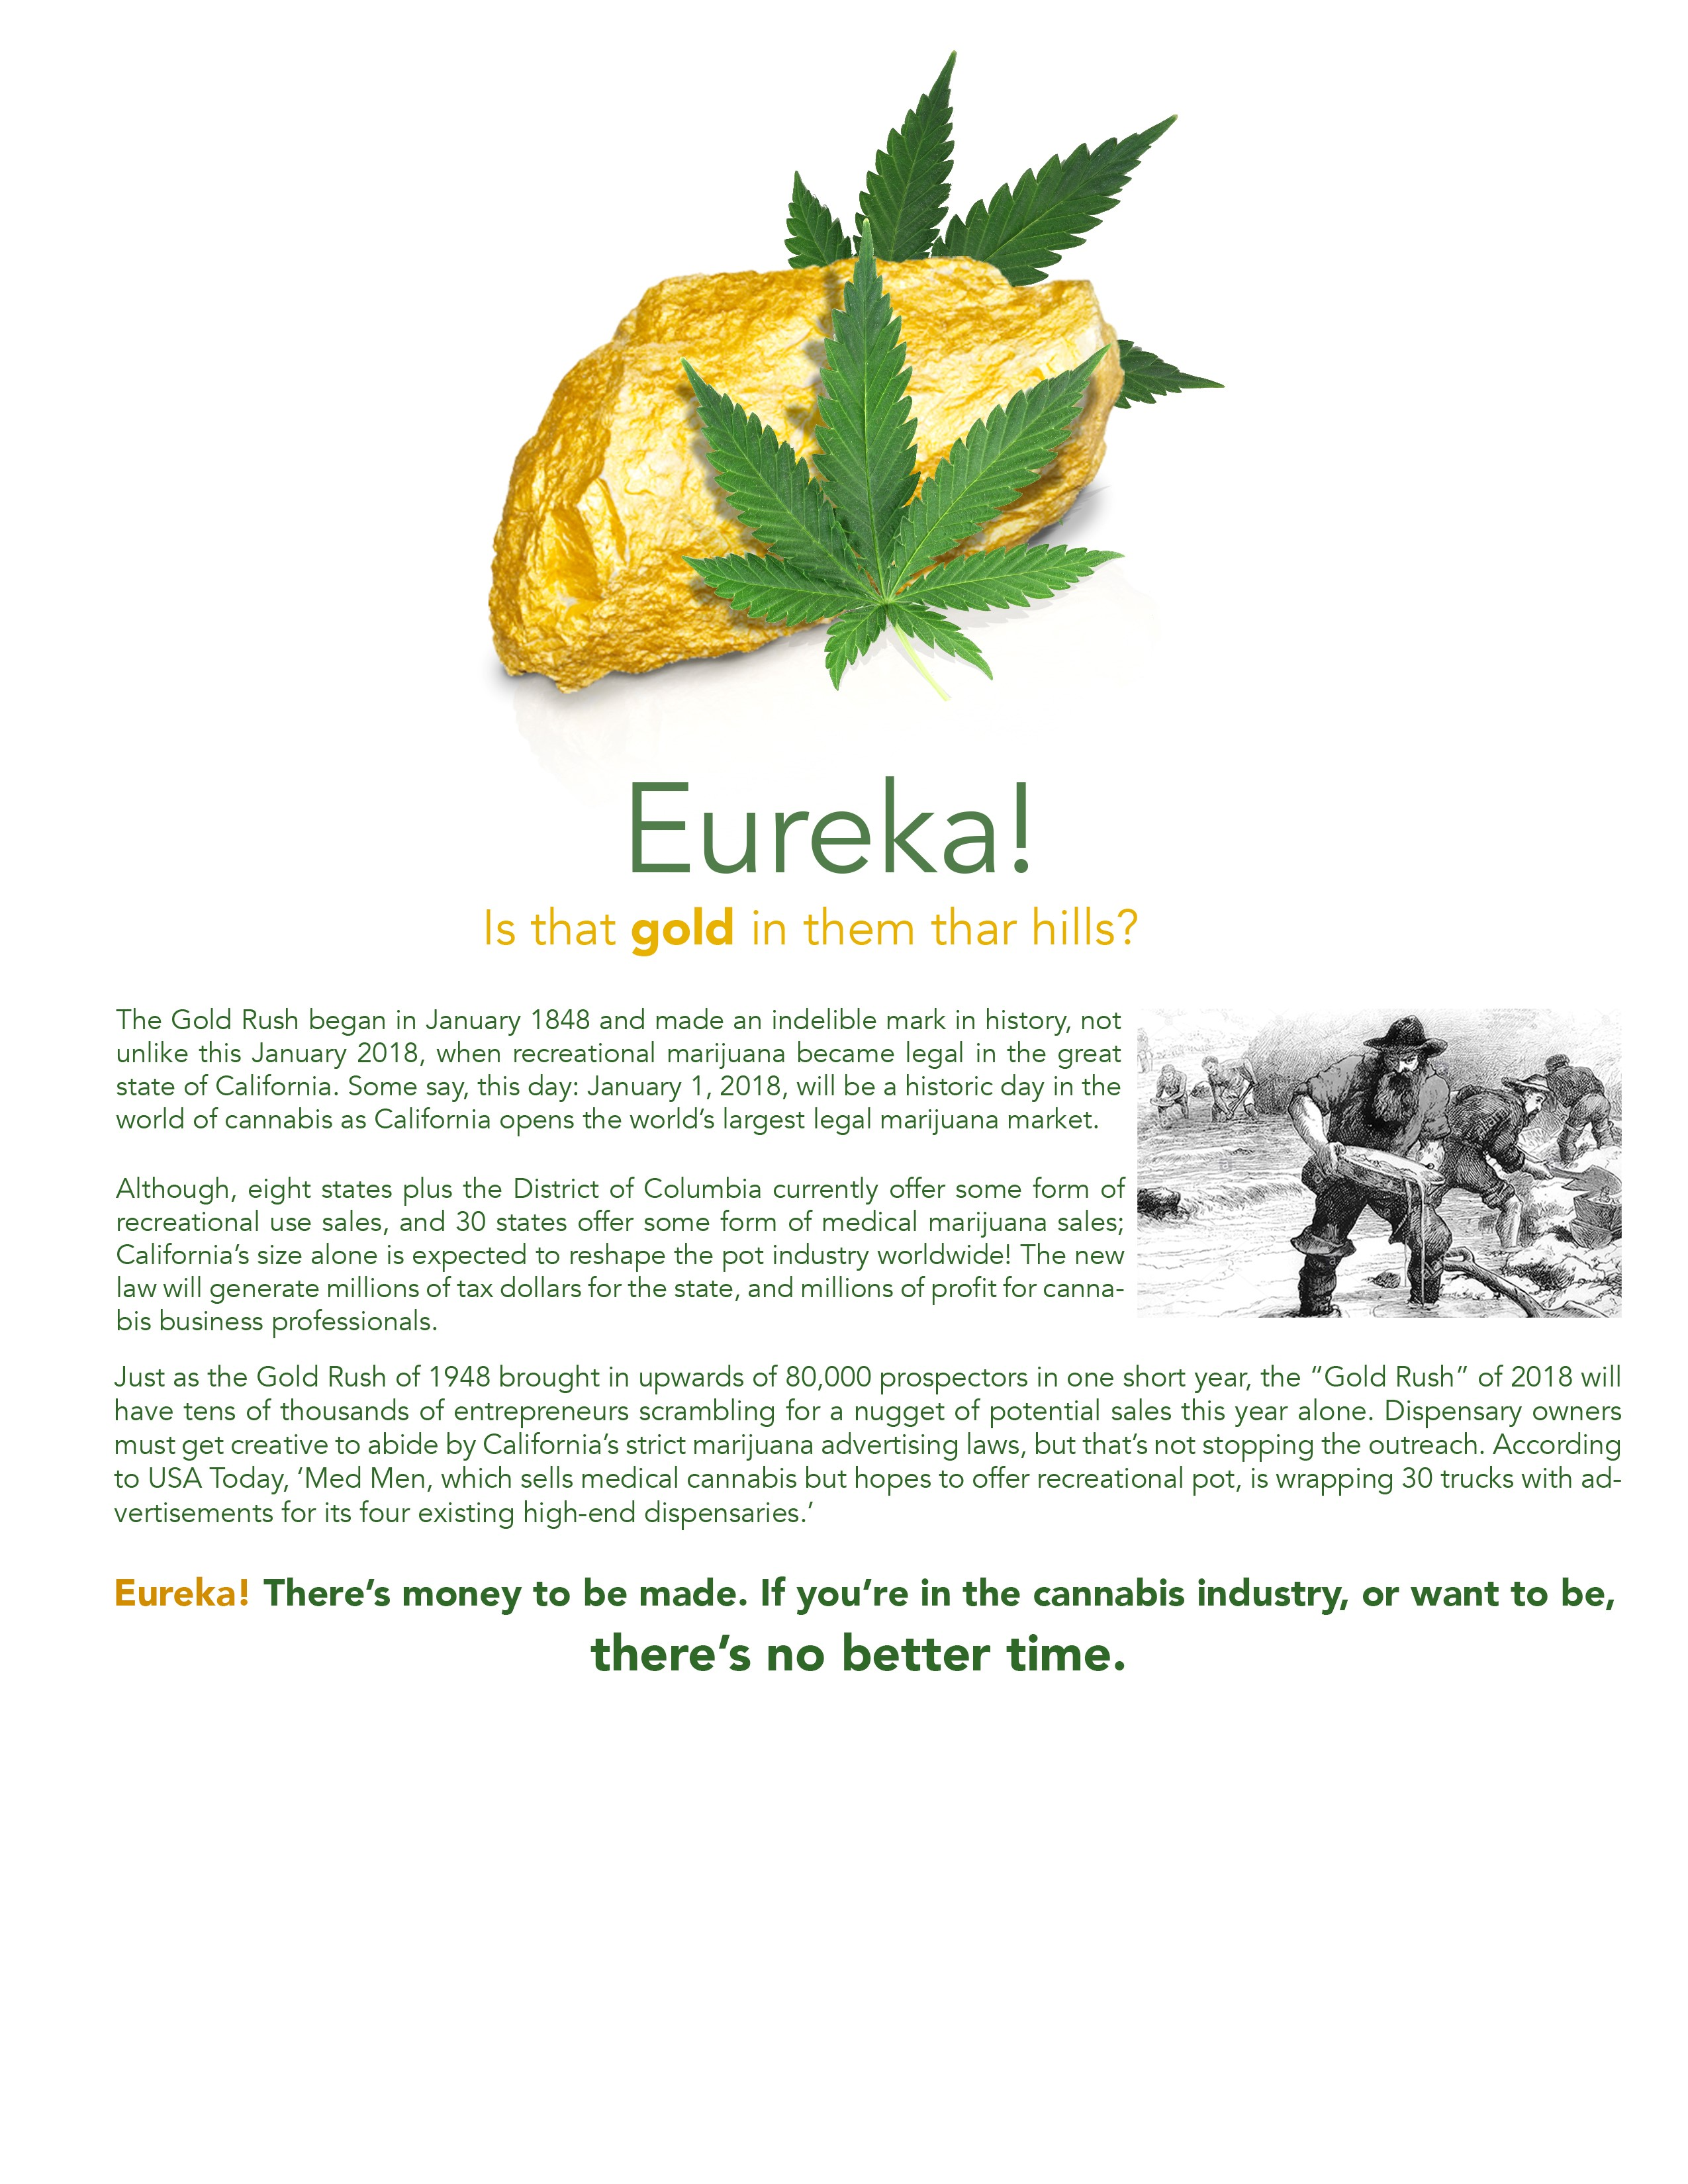 There is money to be made in the cannabis industry - Cannabis packaging